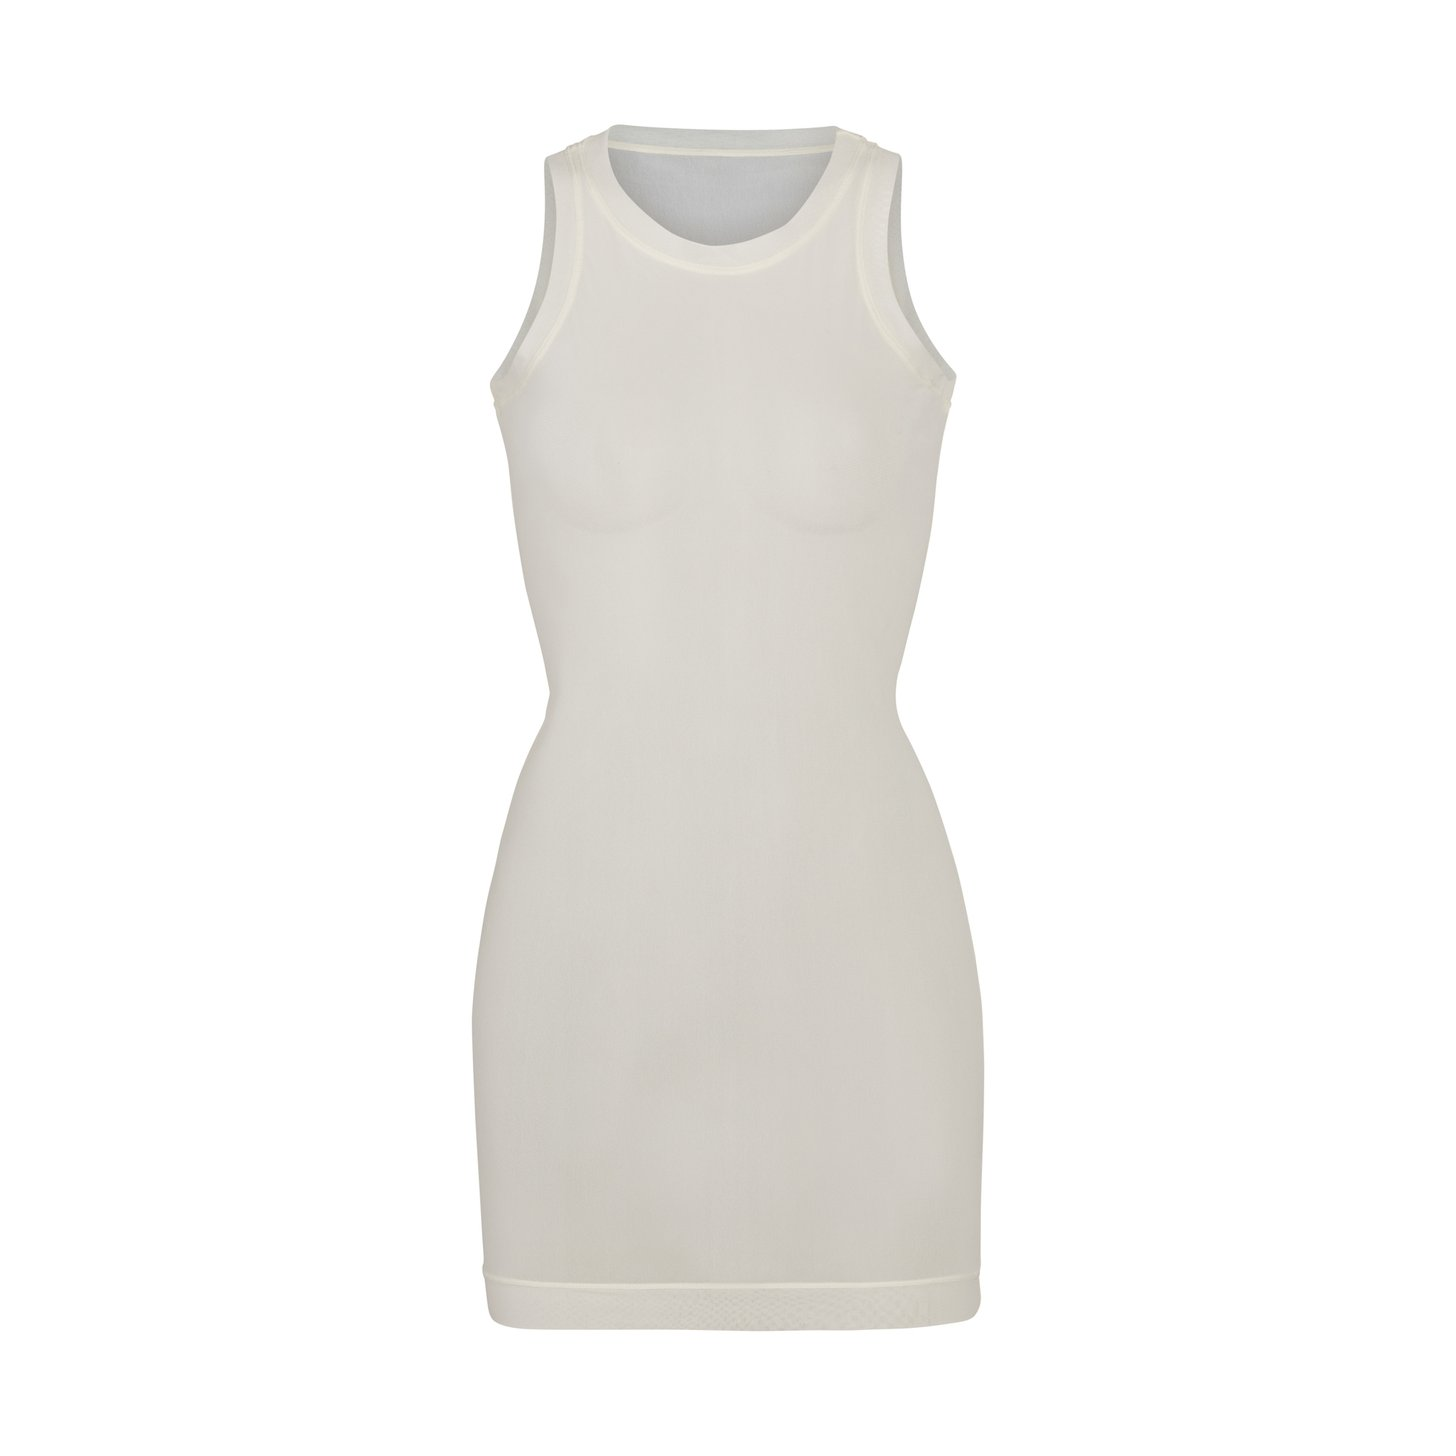 SUMMER MESH HIGH NECK TANK DRESS by Skims, available on skims.com for $76 Kim Kardashian Dress Exact Product